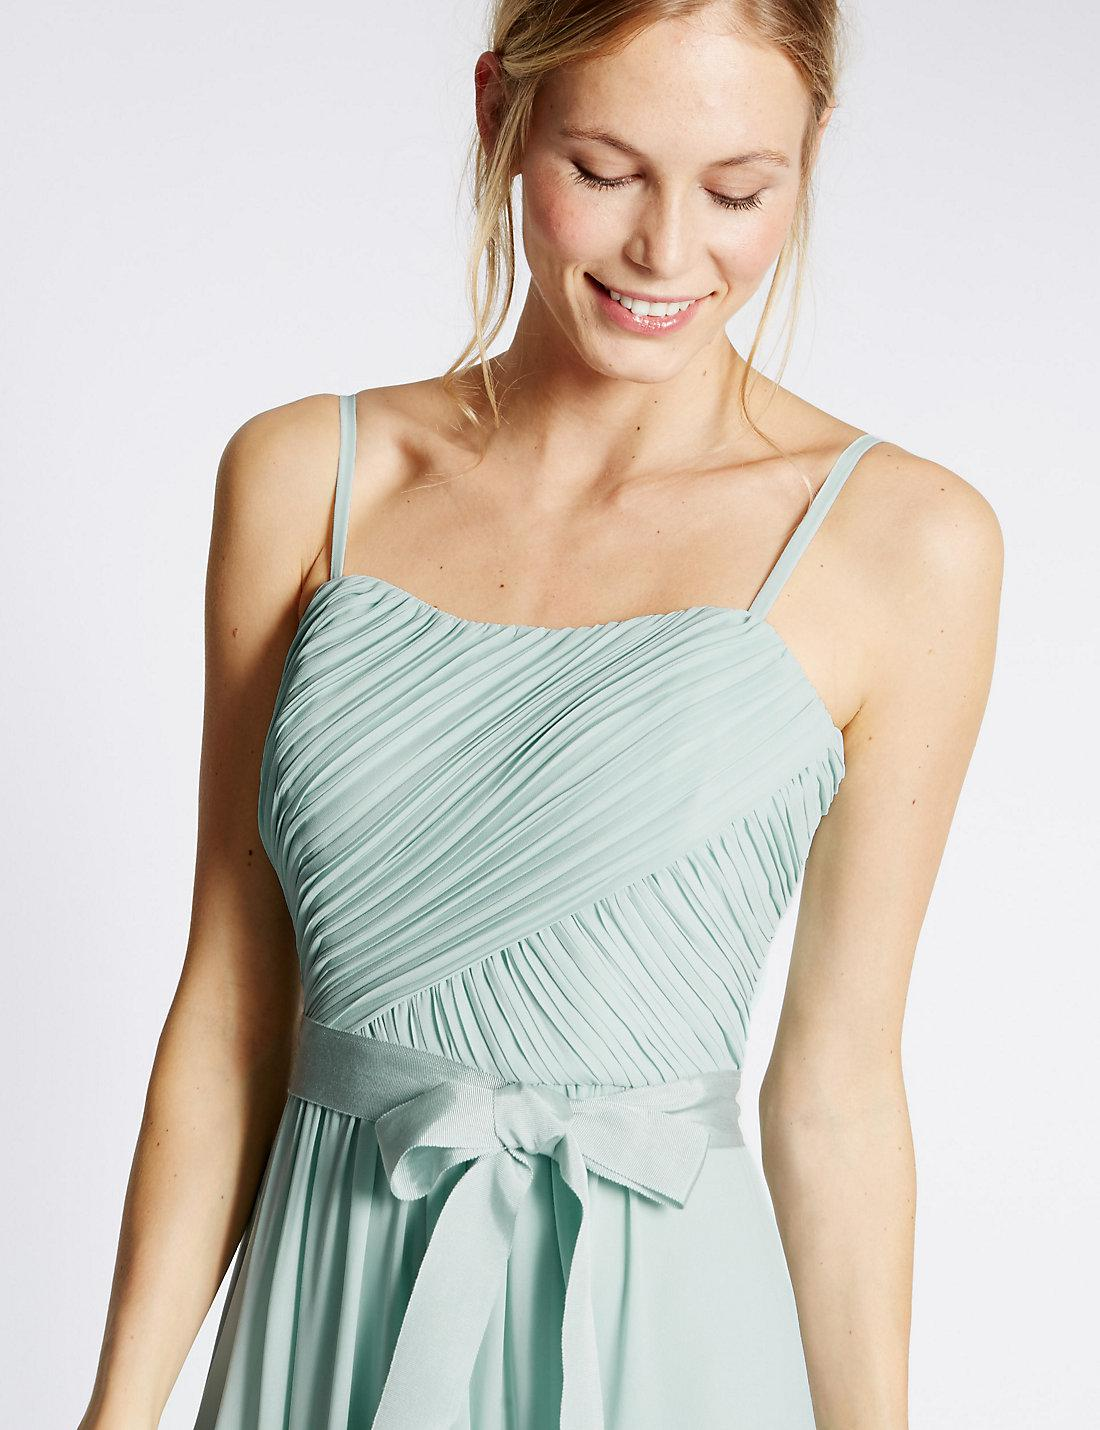 Enchanting Marks And Spencers Party Dresses Crest - All Wedding ...